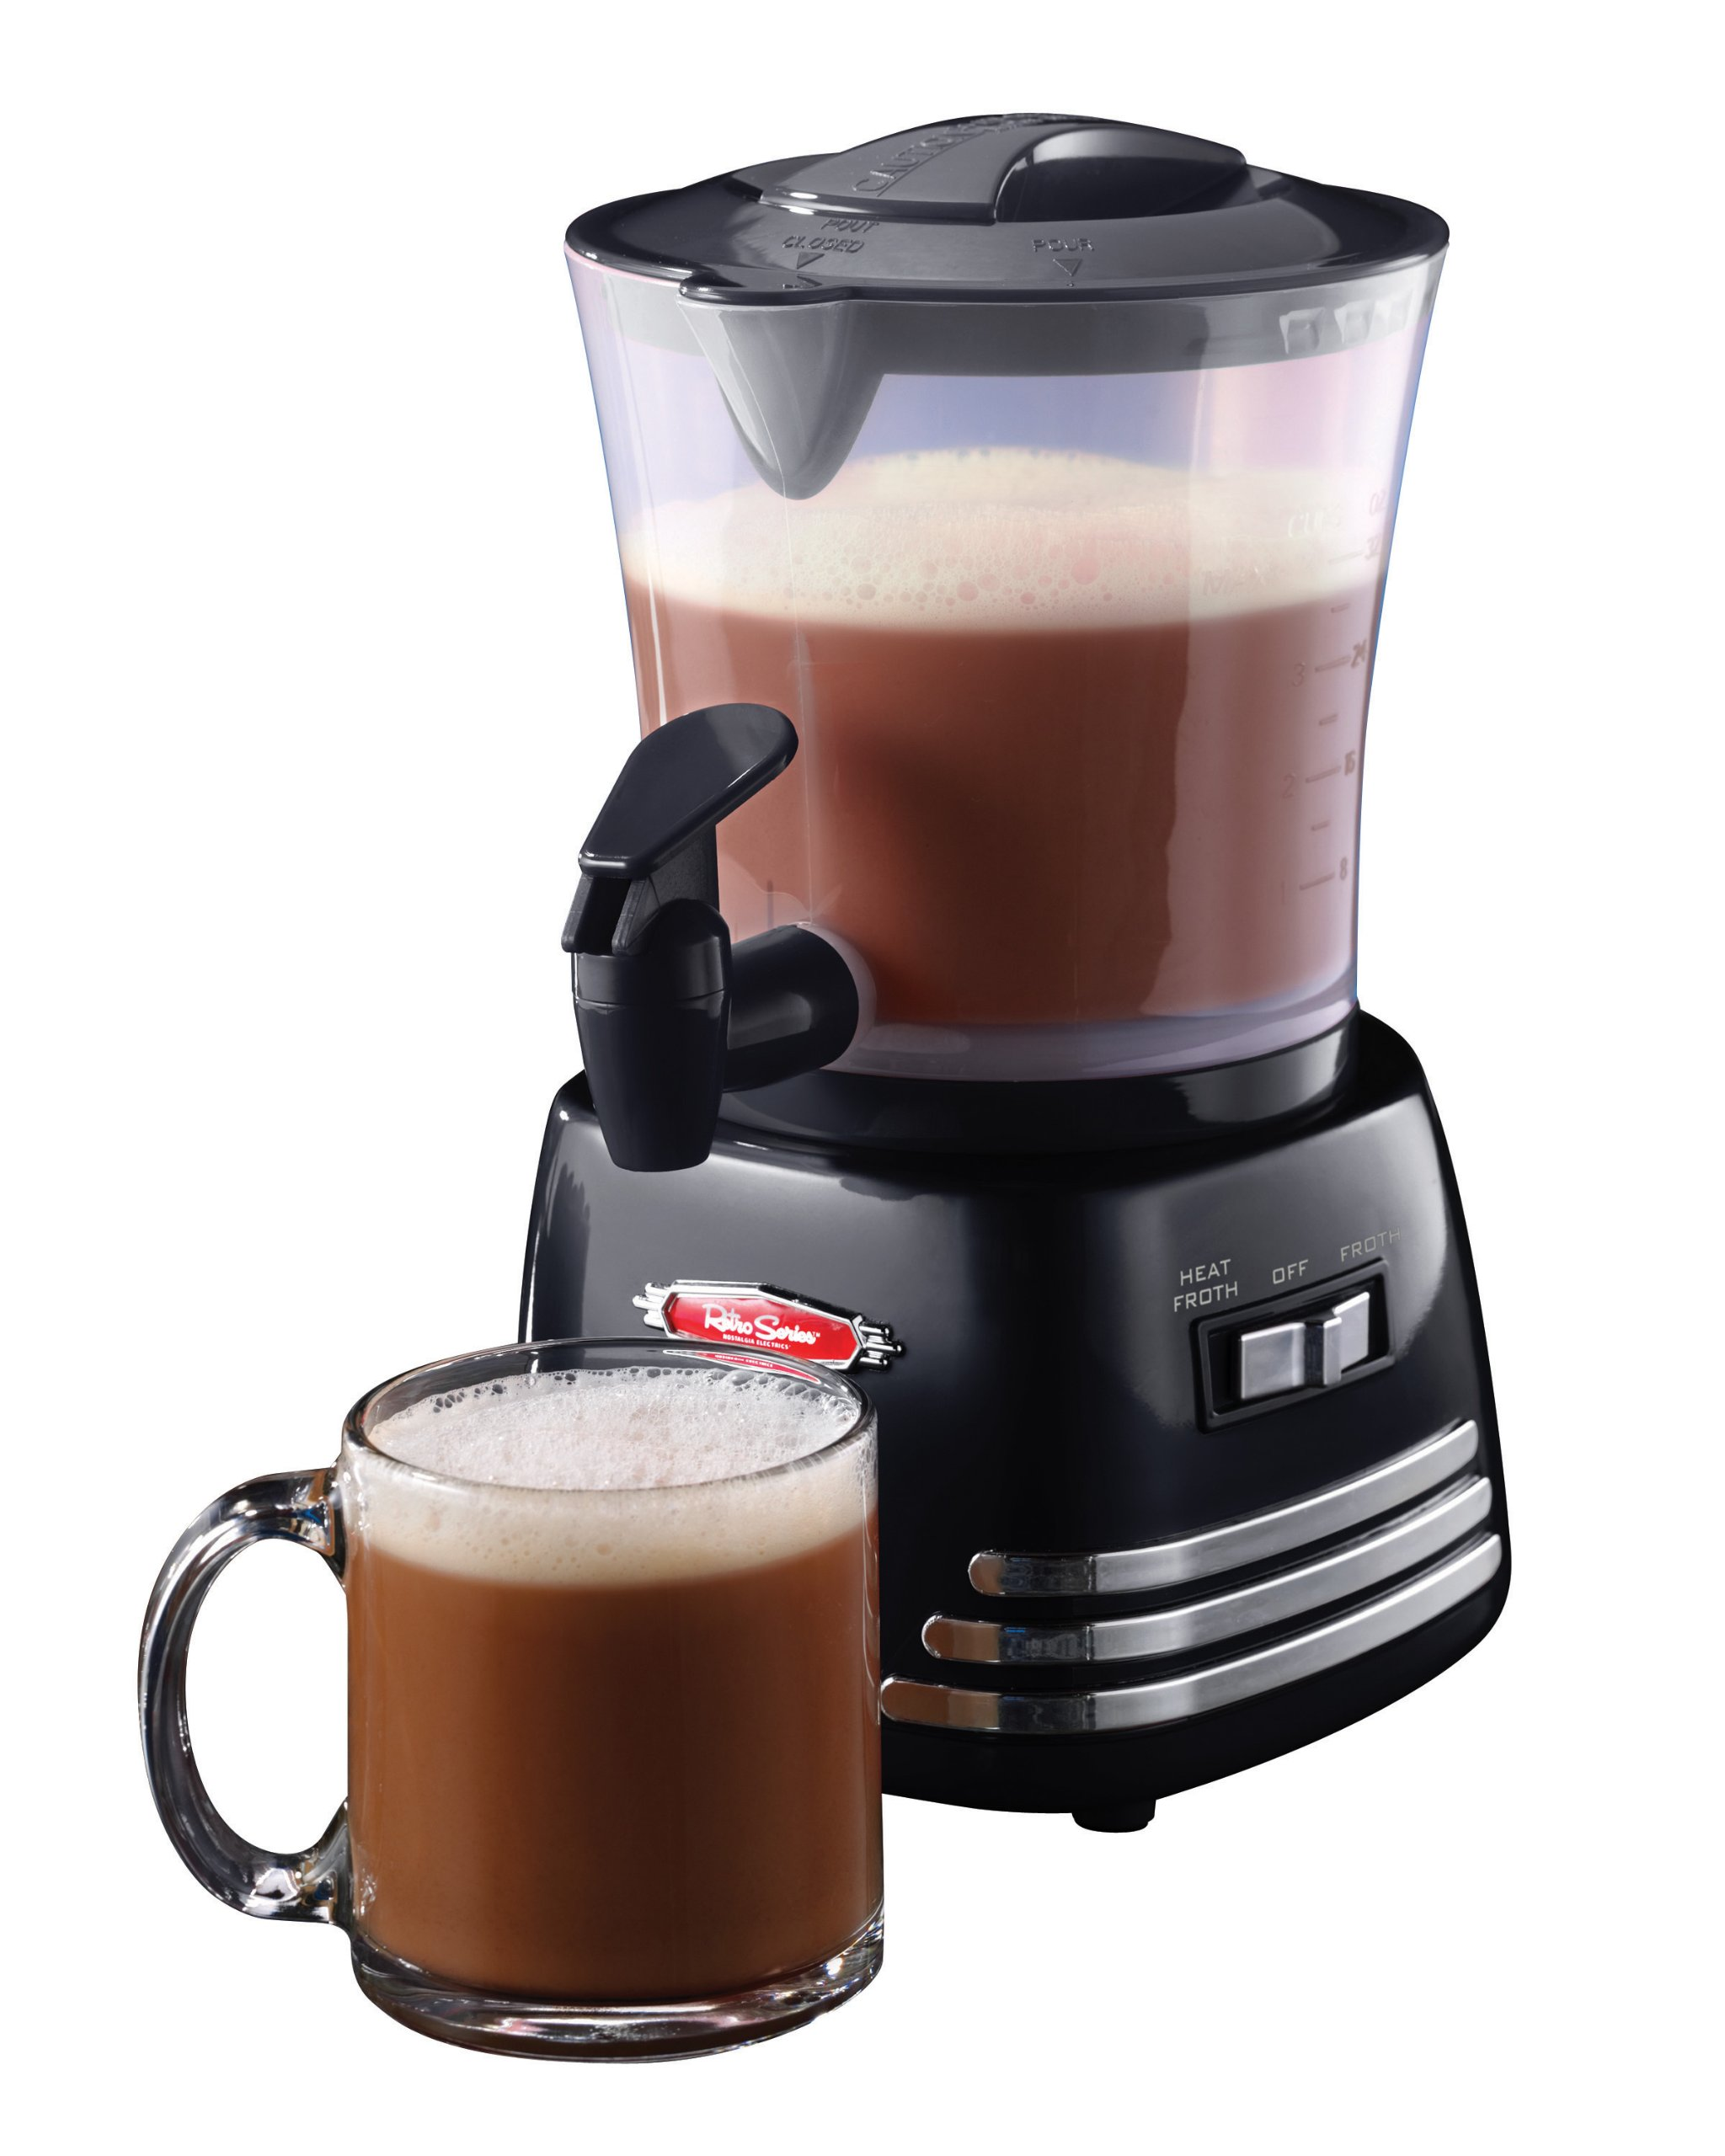 Nostalgia HCM700 Retro 32-Ounce Hot Chocolate, Milk Frother, Cappuccino,Latte Maker and Dispenser